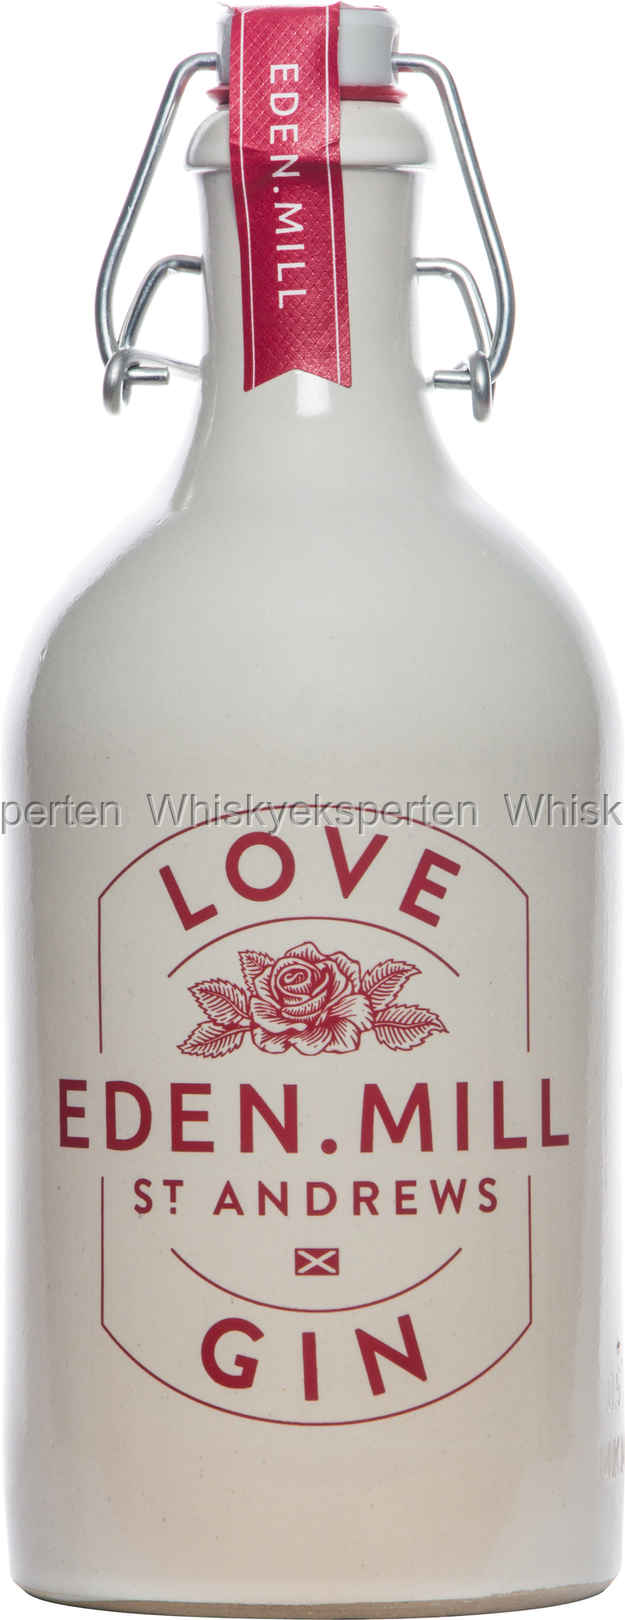 eden mills buddhist single men Correction appended stowe, vt, is a resort town with a soul nearly every business is locally owned there is not a chain-affiliated store, restaurant or motel to be found.